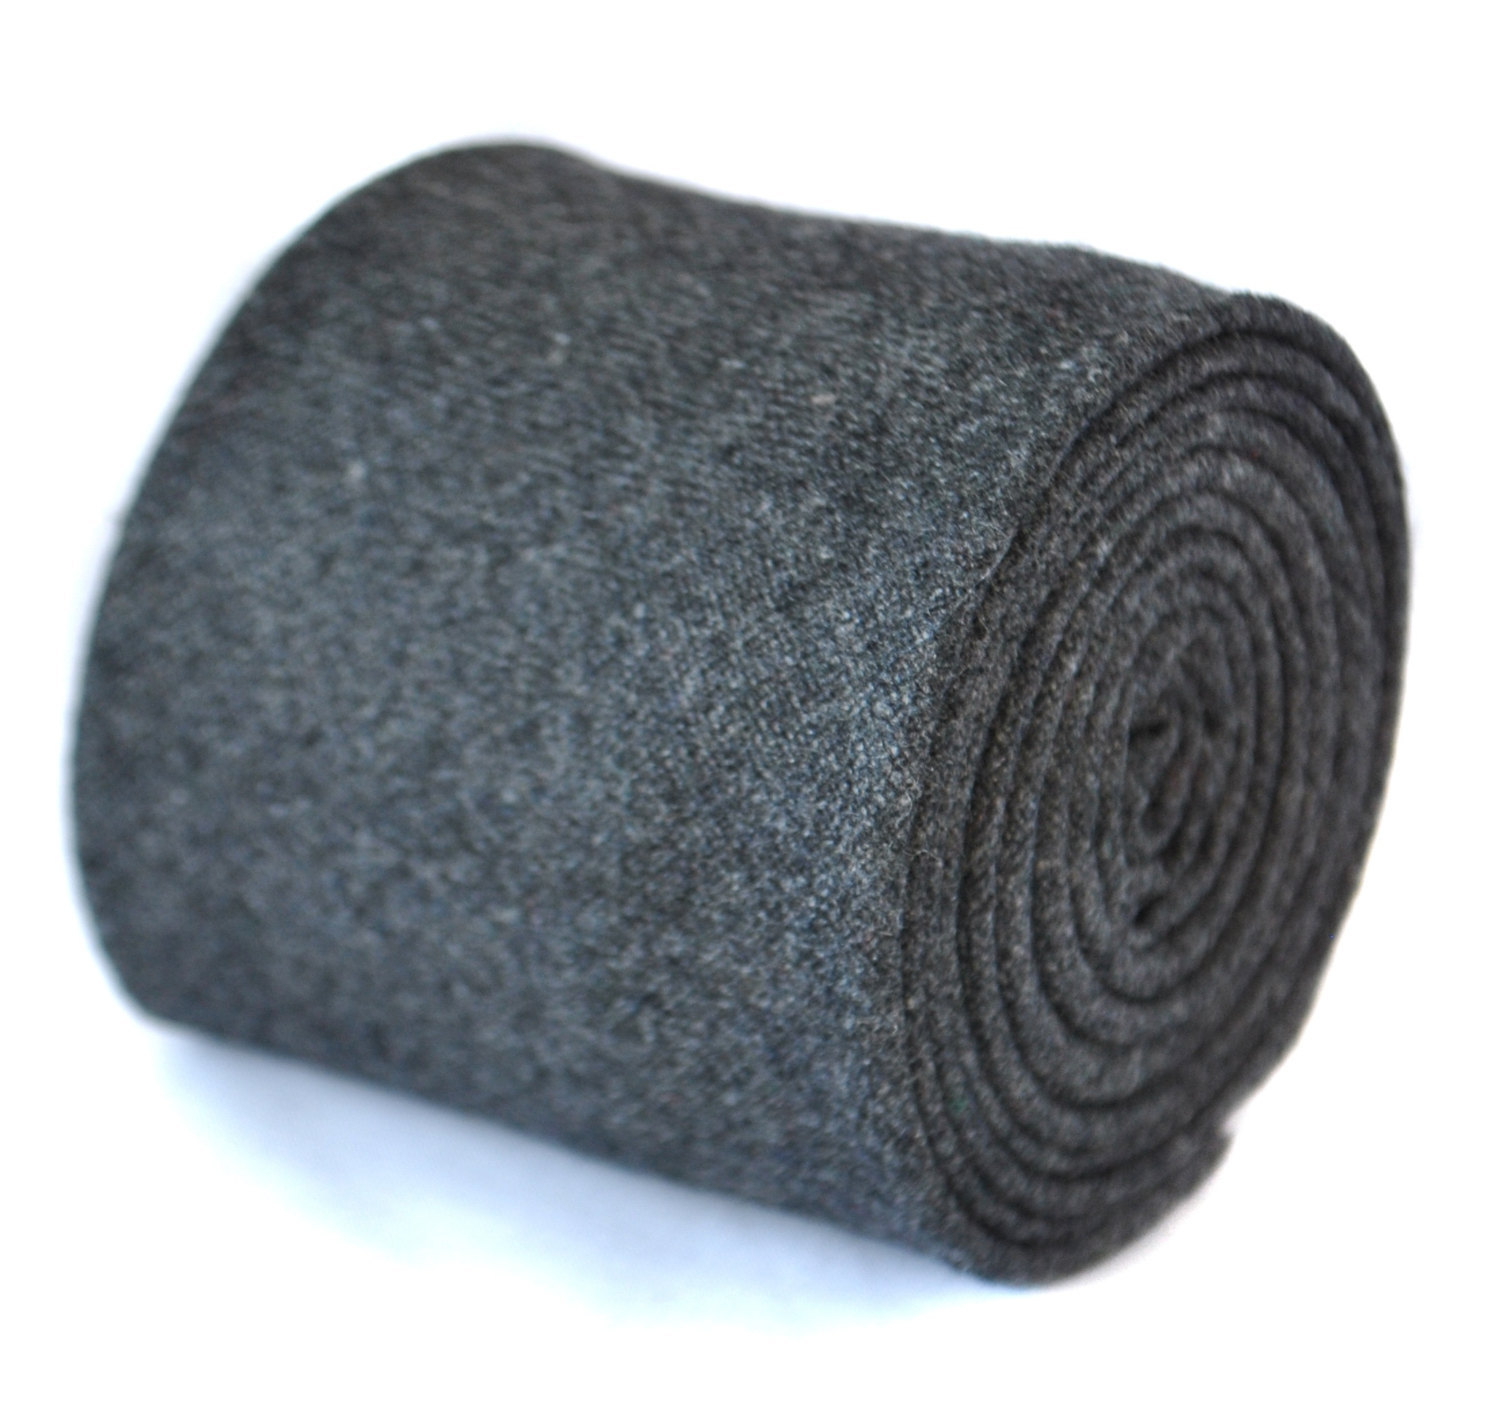 skinny plain dark grey 100% wool tie by Frederick Thomas FT2086